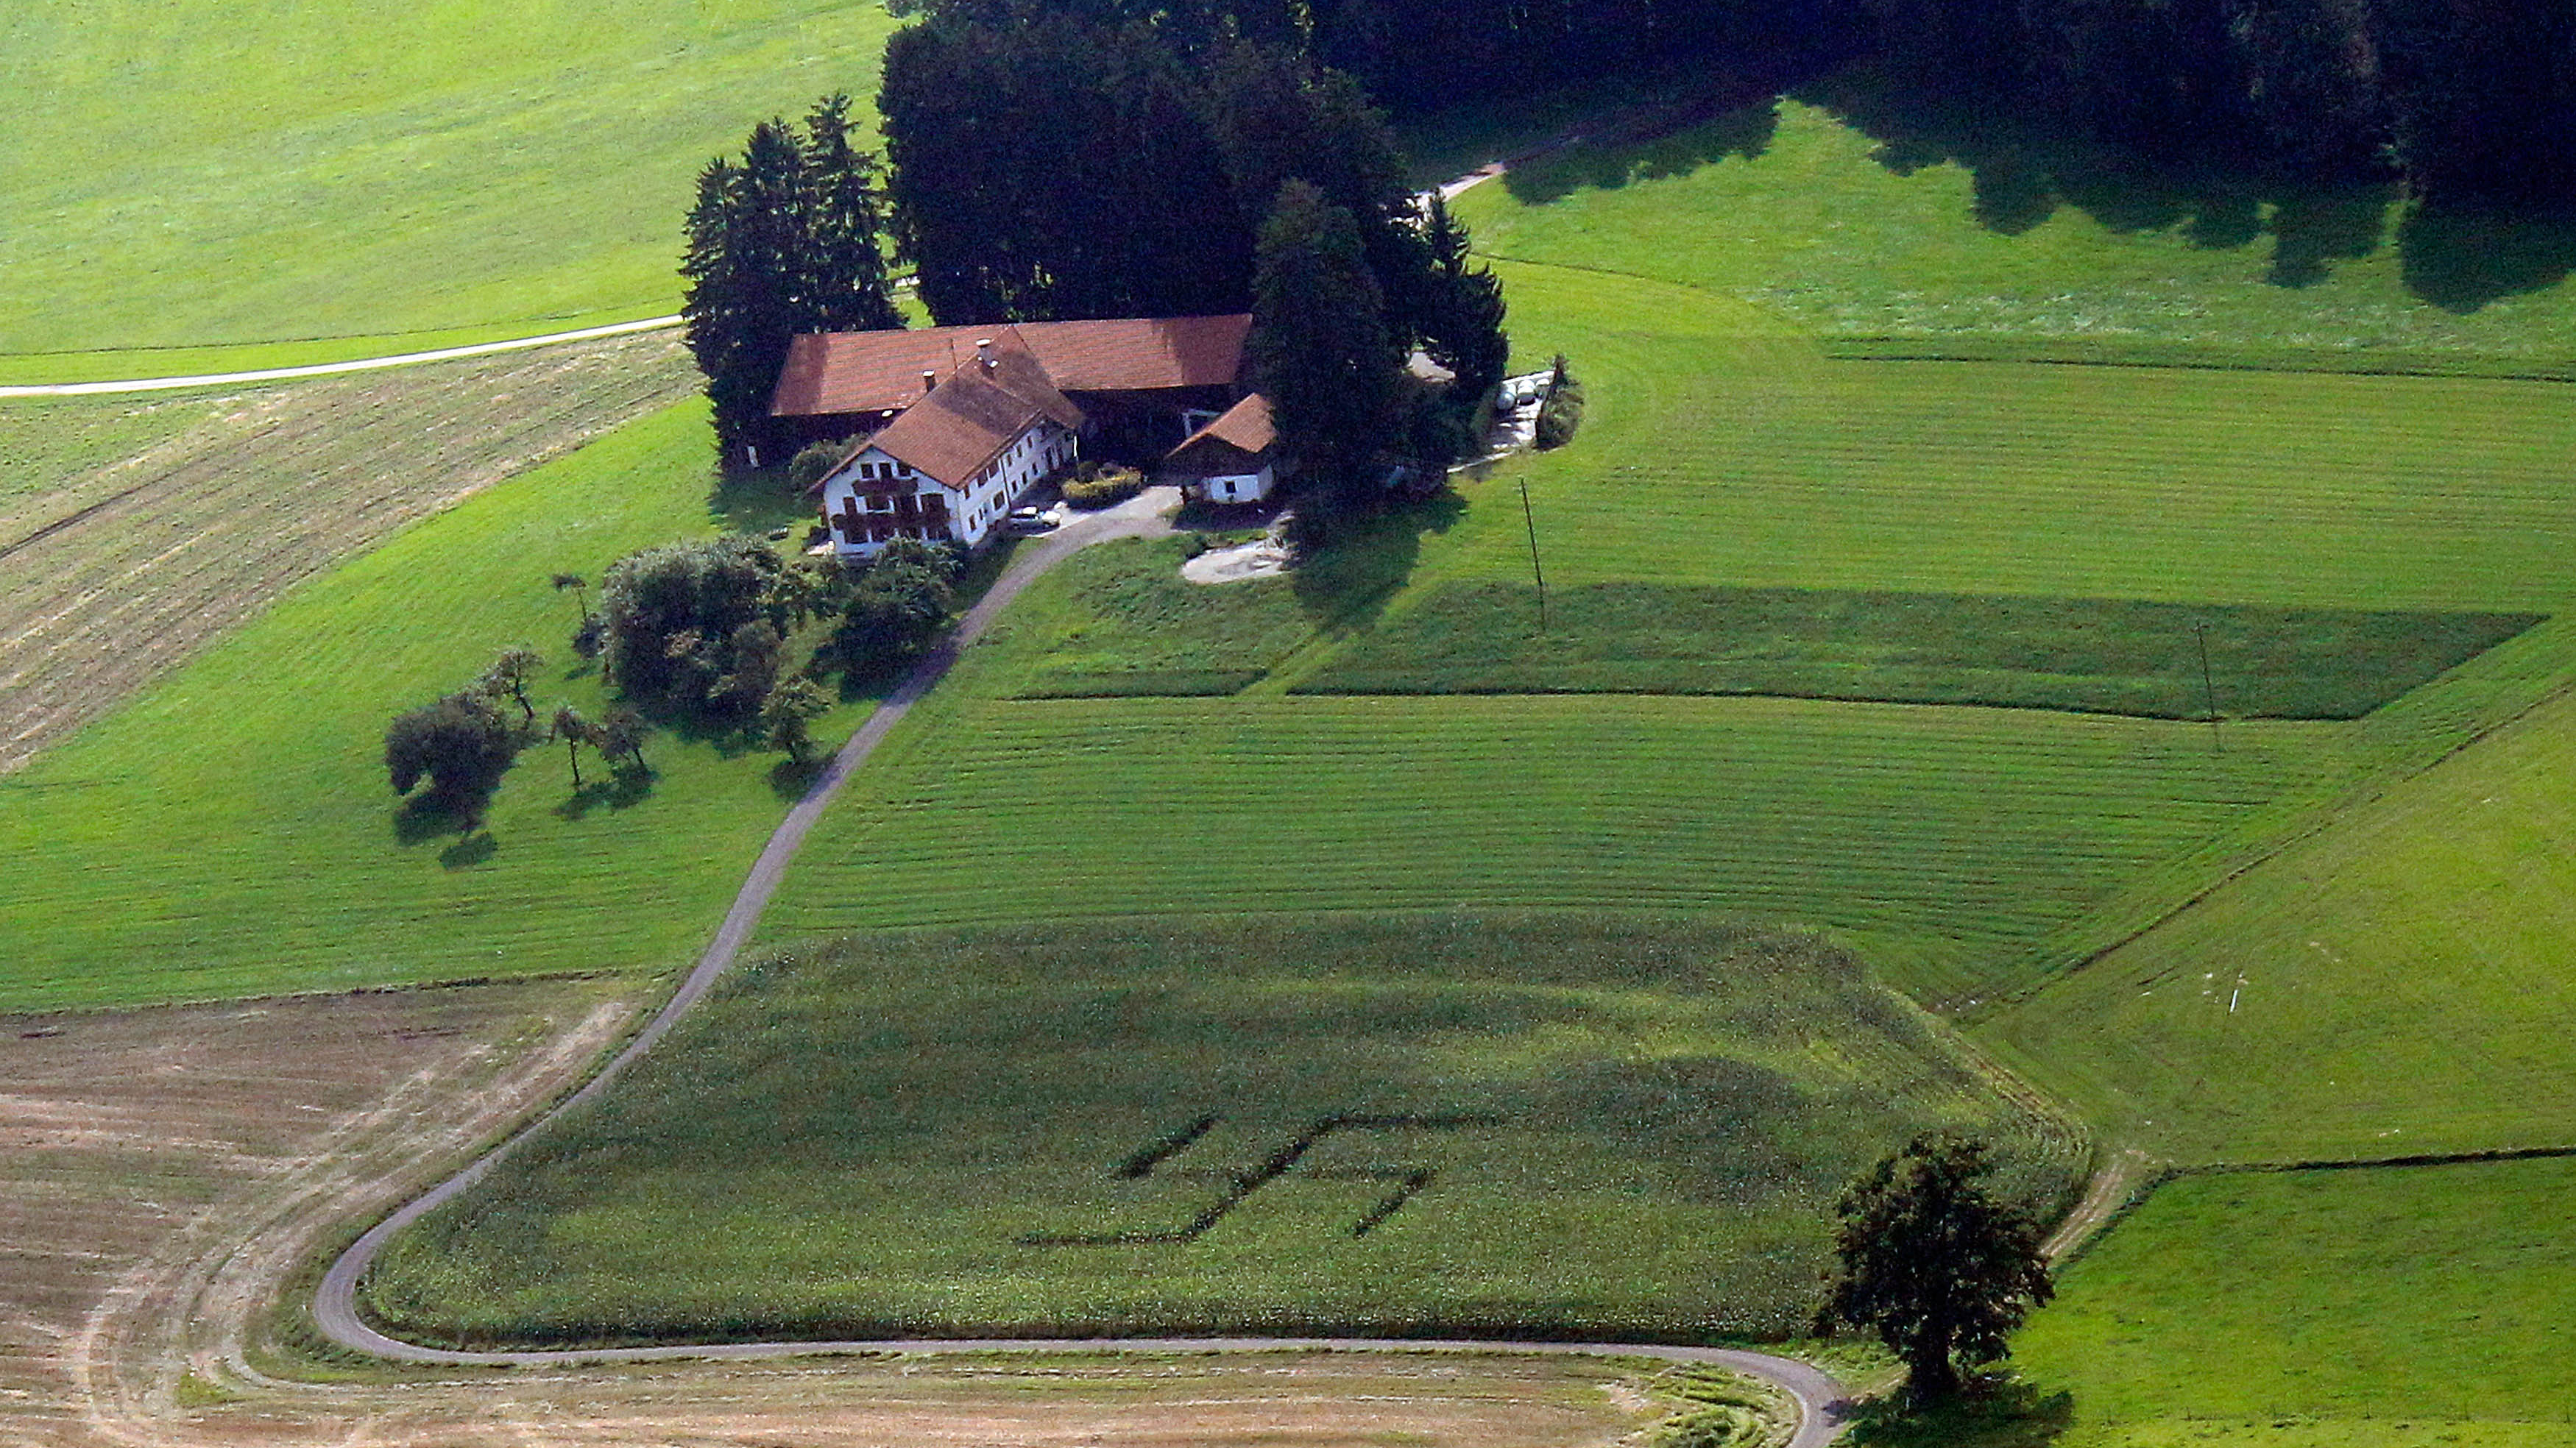 A giant swastika, trampled into a cornfield is pictured at a farm in the village Niklasreuth near Assling, about 30 km (18 miles) near the southern Bavarian town of Rosenheim August 24, 2010. Police are currently investigating who the culprits of the swastika are. The use of Nazi paraphernalia and symbols is illegal in Germany.